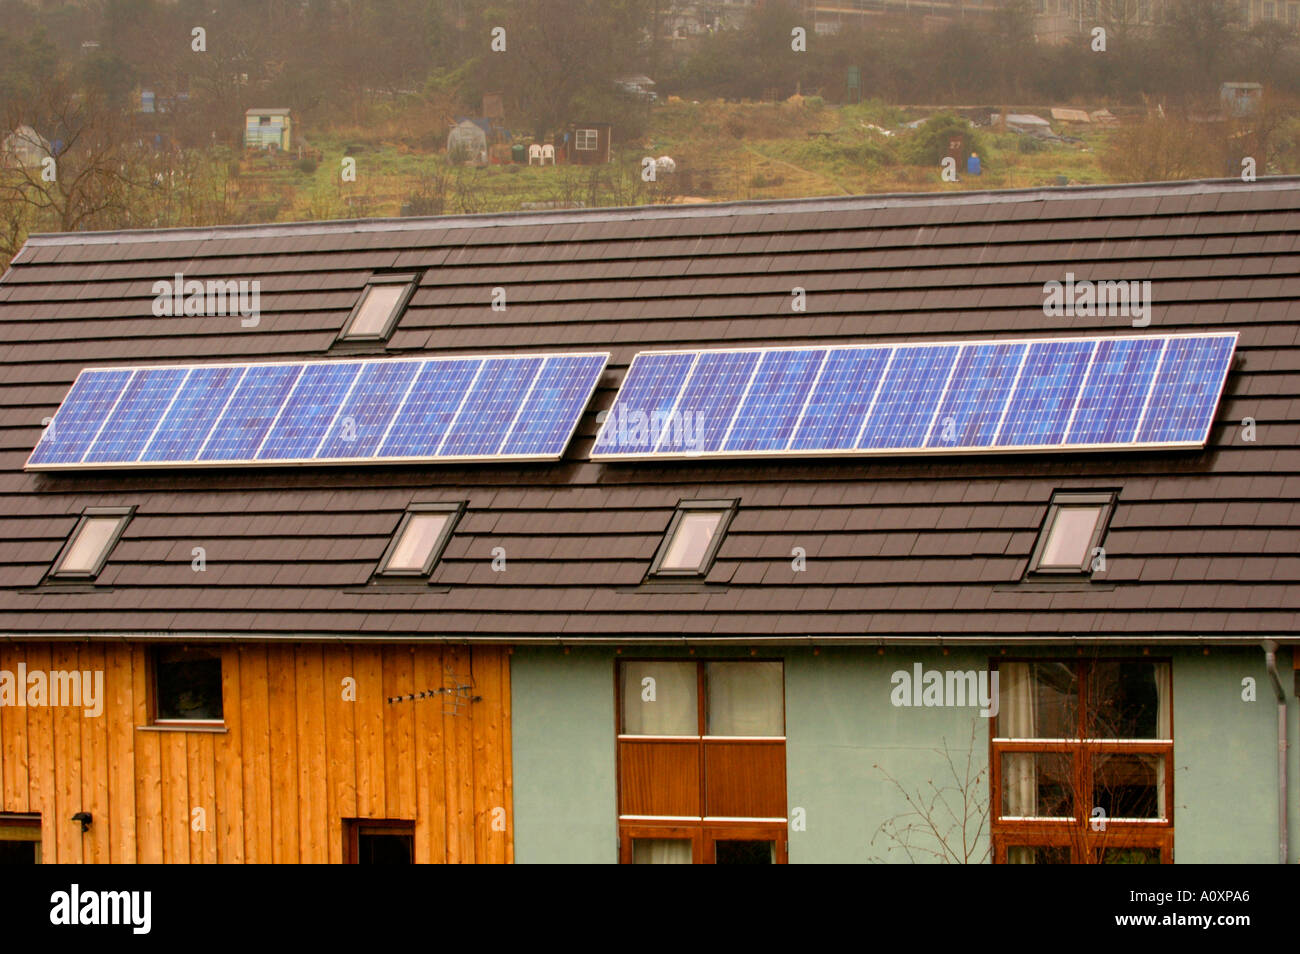 Self build ECO homes with solar panels on roof under construction at the Ashley Vale site in Bristol England UK - Stock Image